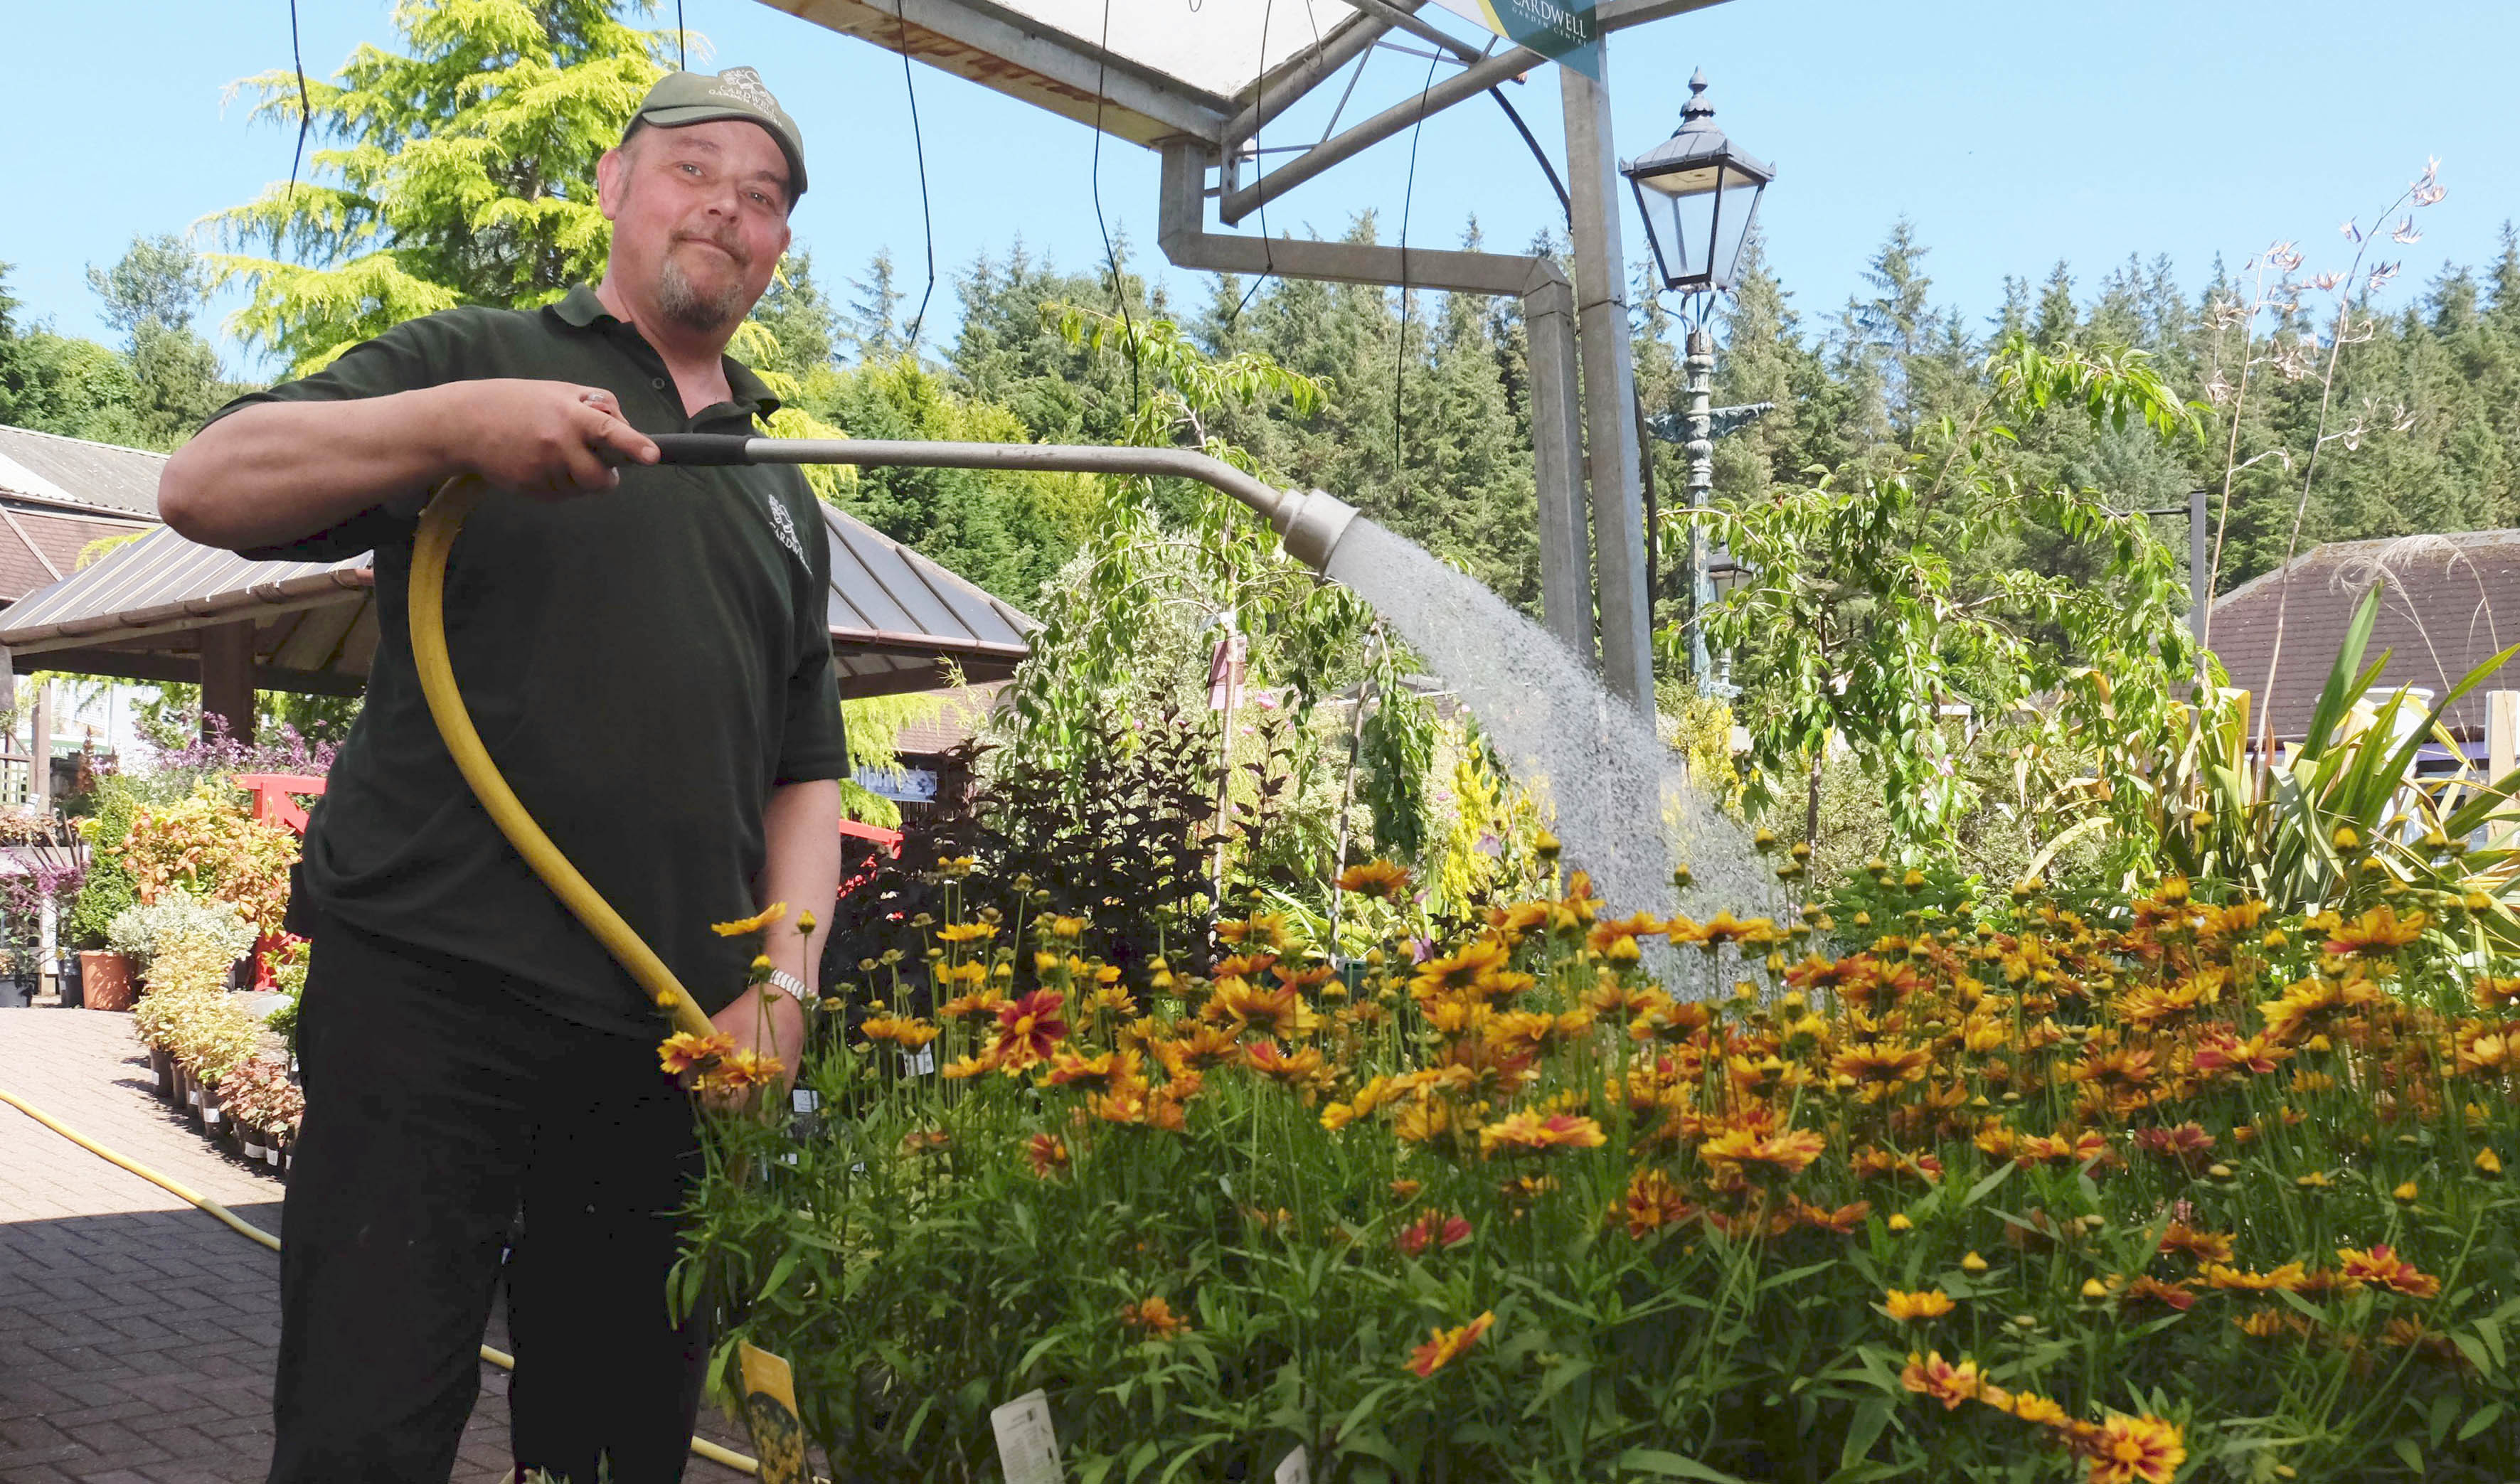 Brian Hawthorn watering plants in the shade at Cardwell Garden Centre